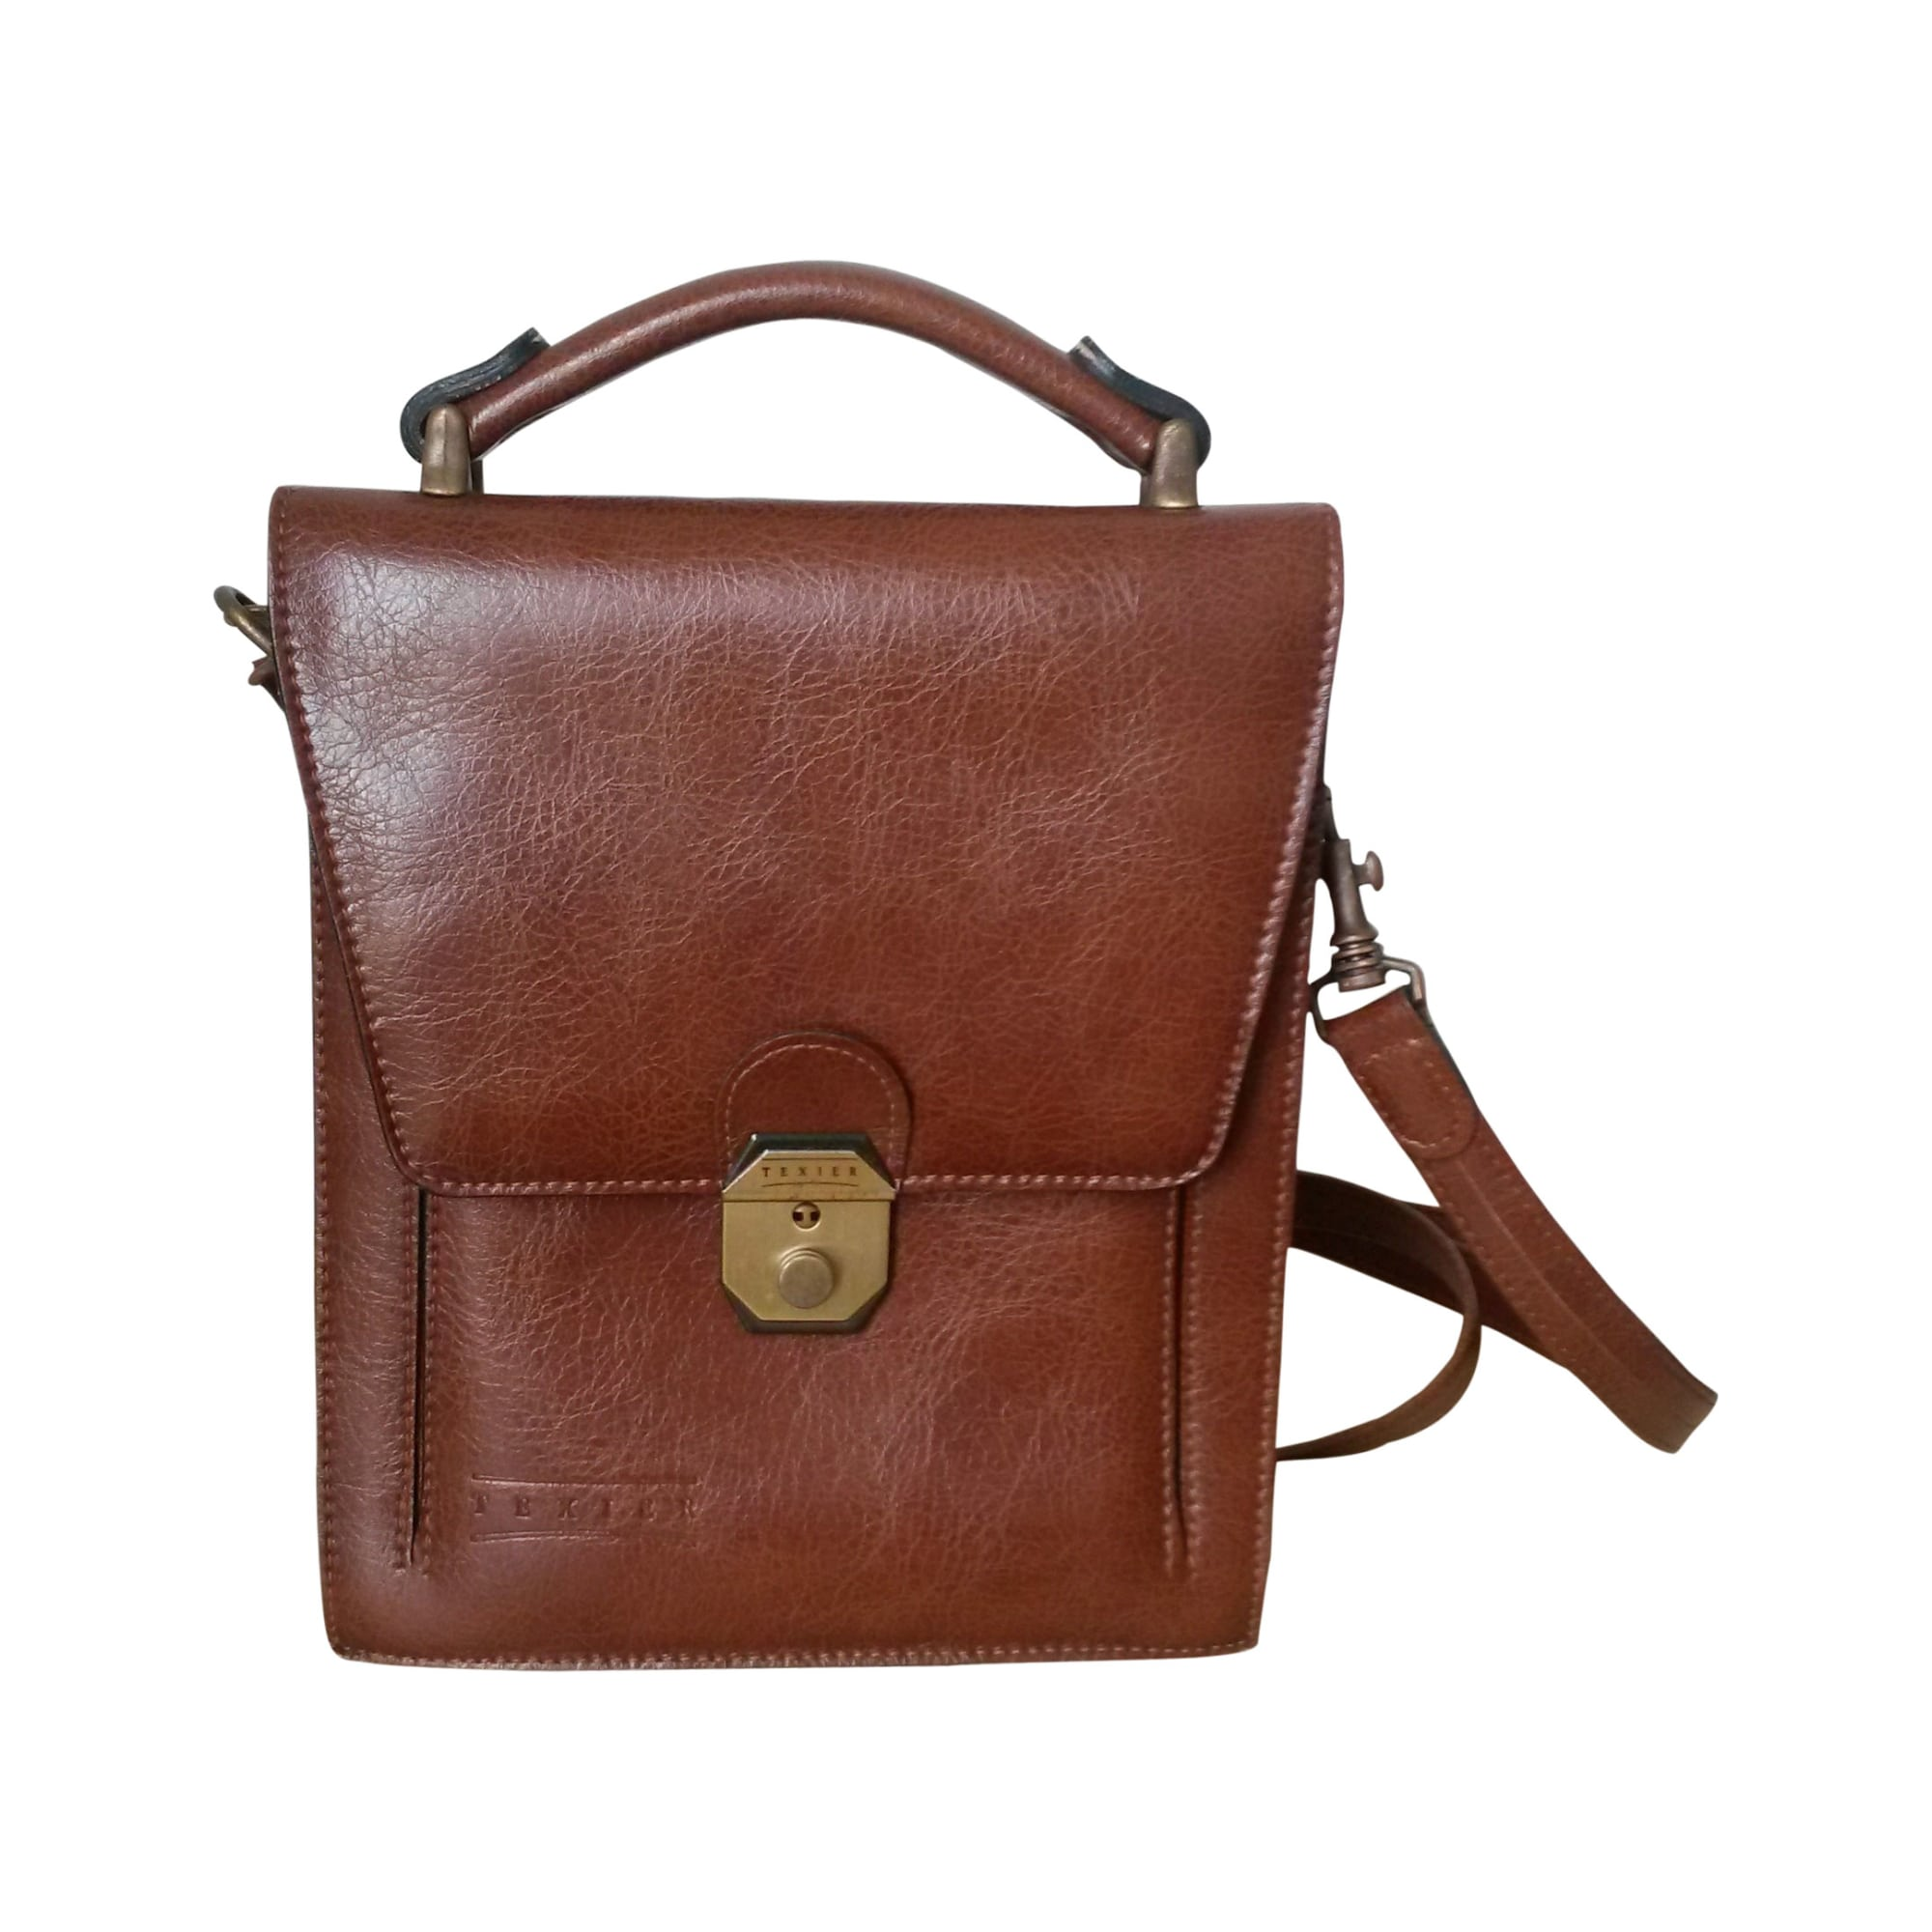 a9c16faeff5e Small Messenger Bag TEXIER brown vendu par Djay208391 - 2174952